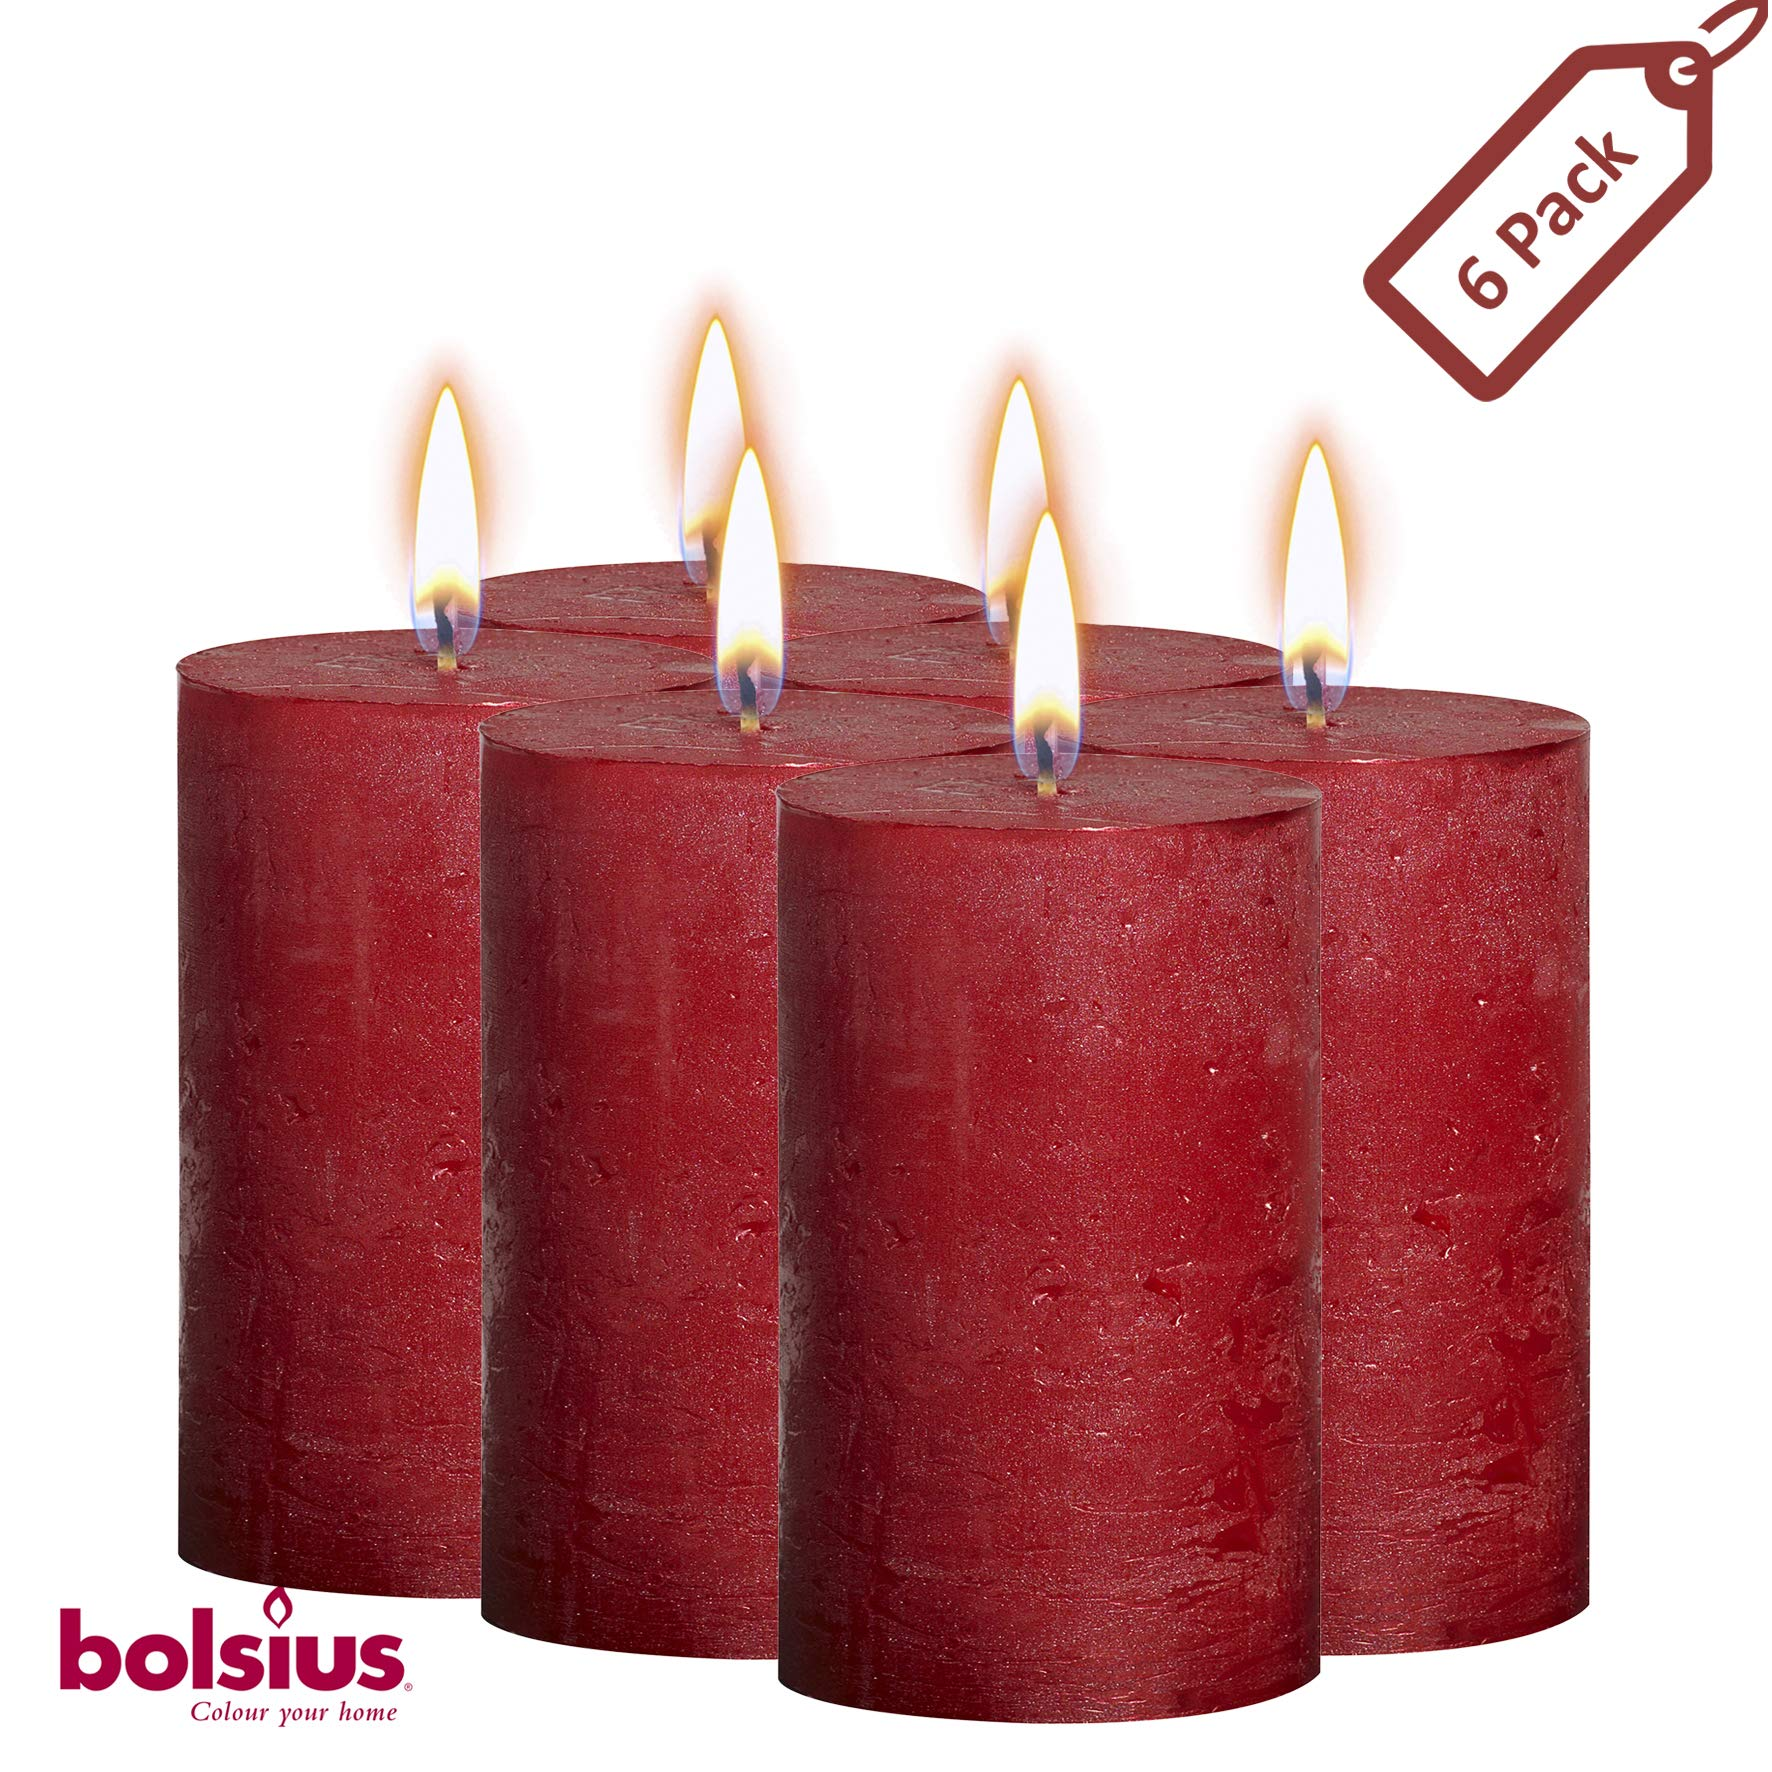 BOLSIUS Rustic Full Metallic Red Candles - Set of 6 Unscented Pillar Candles - Red Candles with a Full Metallic Coat - Slow Burning - Perfect Décor Candle - 130/68m 5 X 2.75 Inches